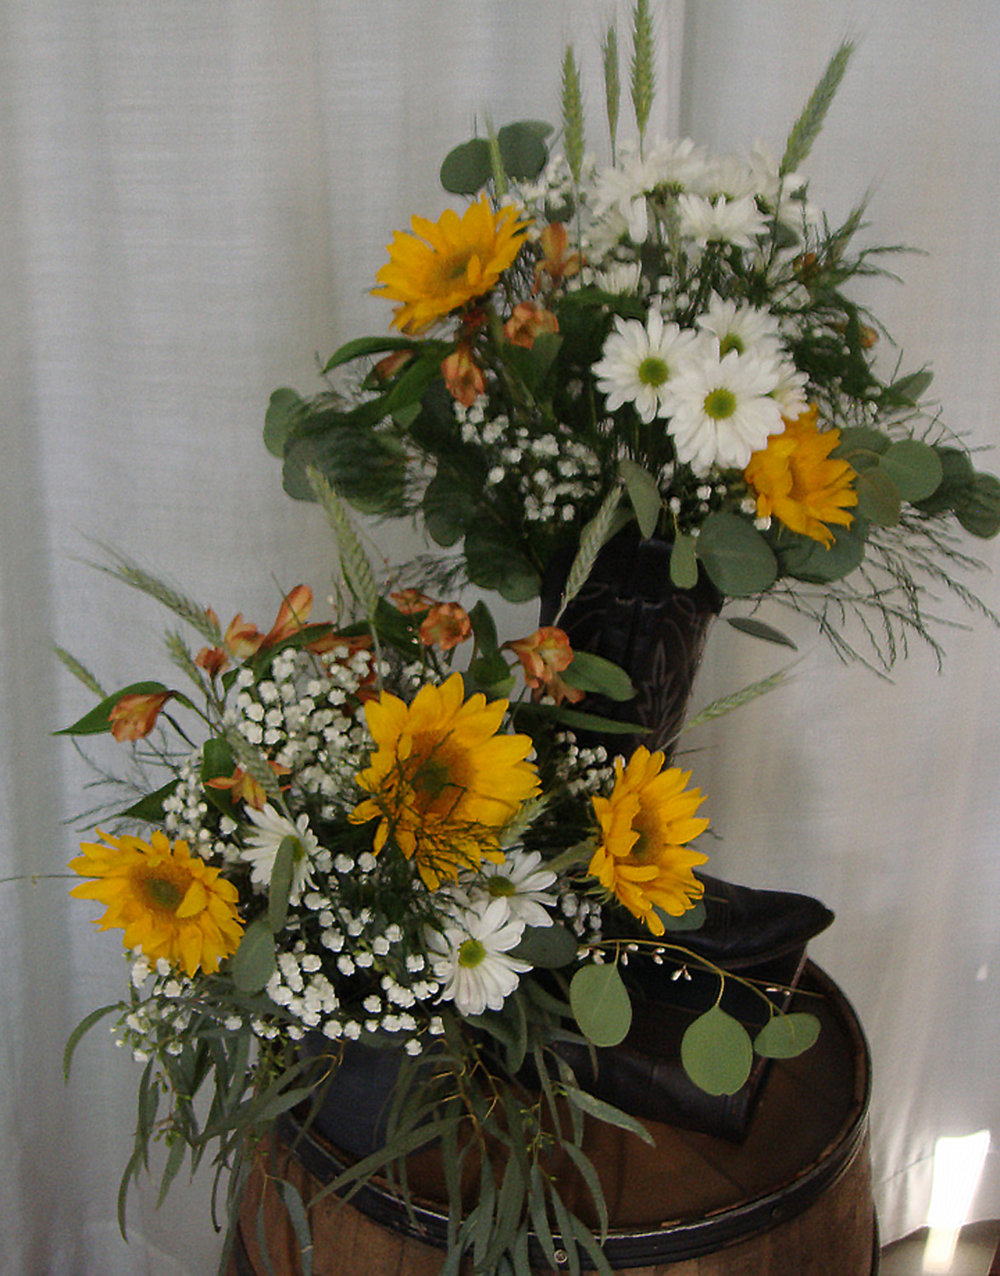 ceremony arrangements for outdoor, western or country ceremony - fresh flowers on  whisky barrel